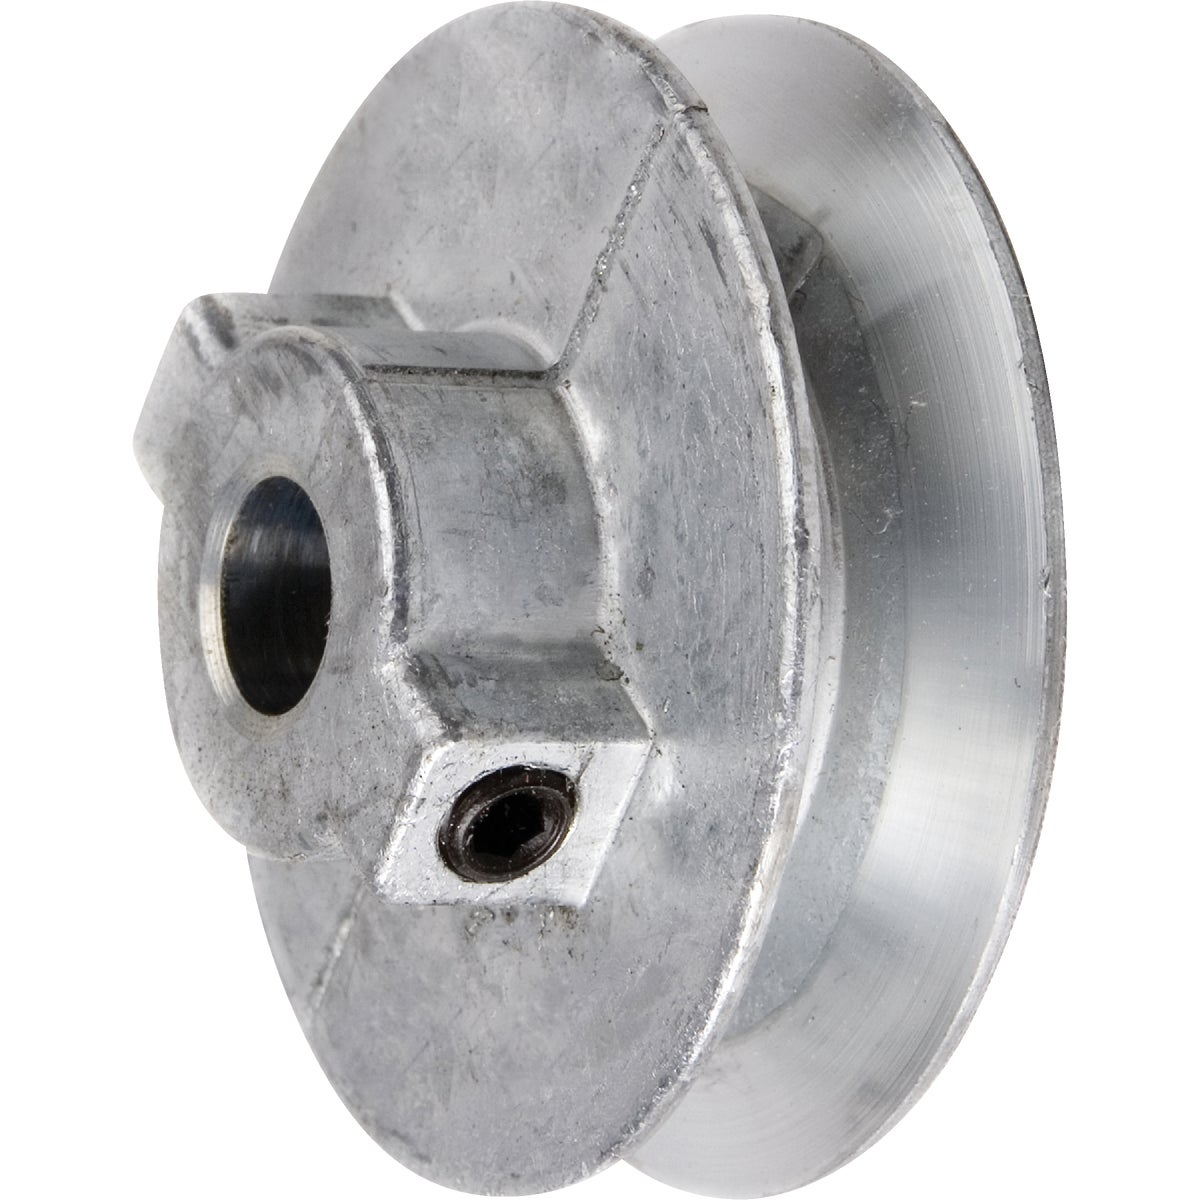 4X1/2 PULLEY - 400A5 by Chicago Die Casting